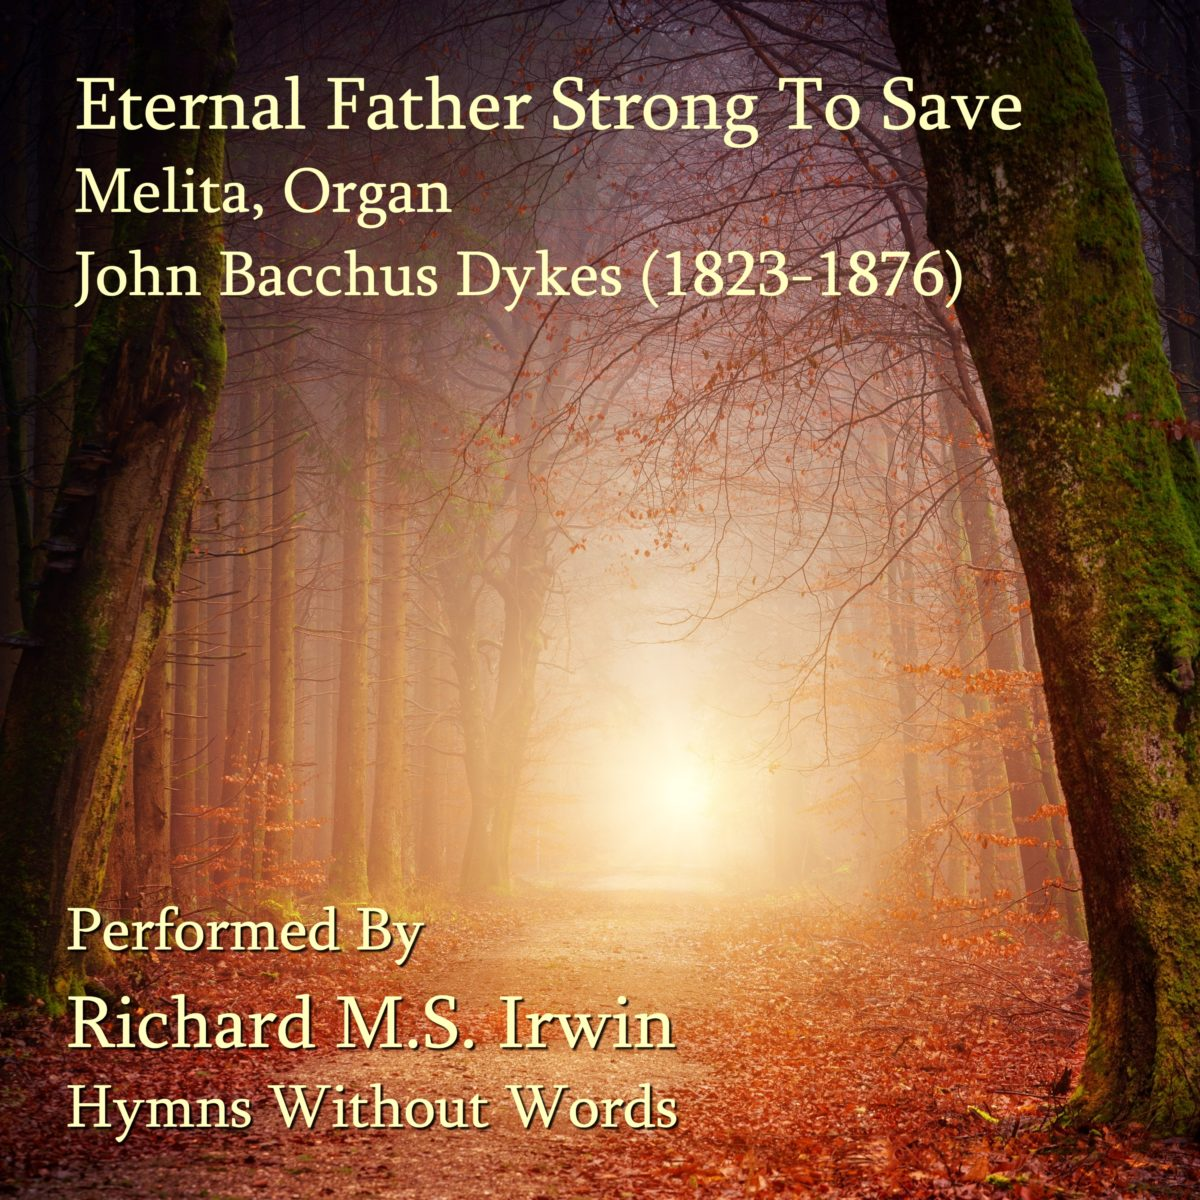 Eternal Father Strong To Save (Melita – 4 Verses) – Organ & Trumpet Descant